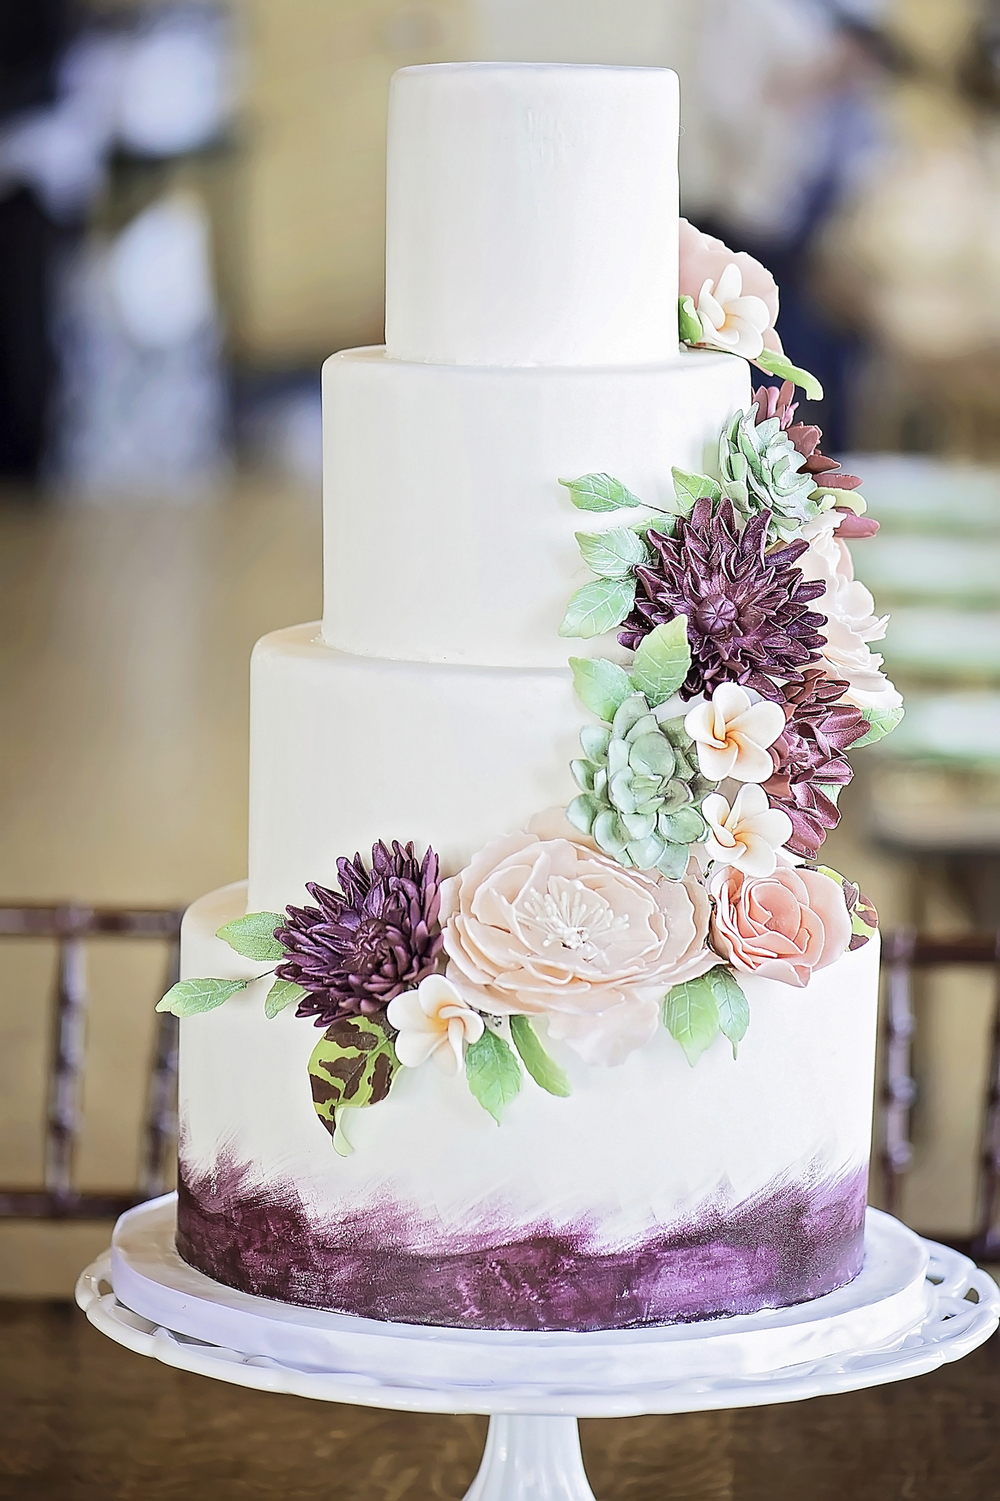 Gorgeous 4 Tier Wedding Cake with Sugar Flowers and Succulents / photo by Maria Nicole Photography